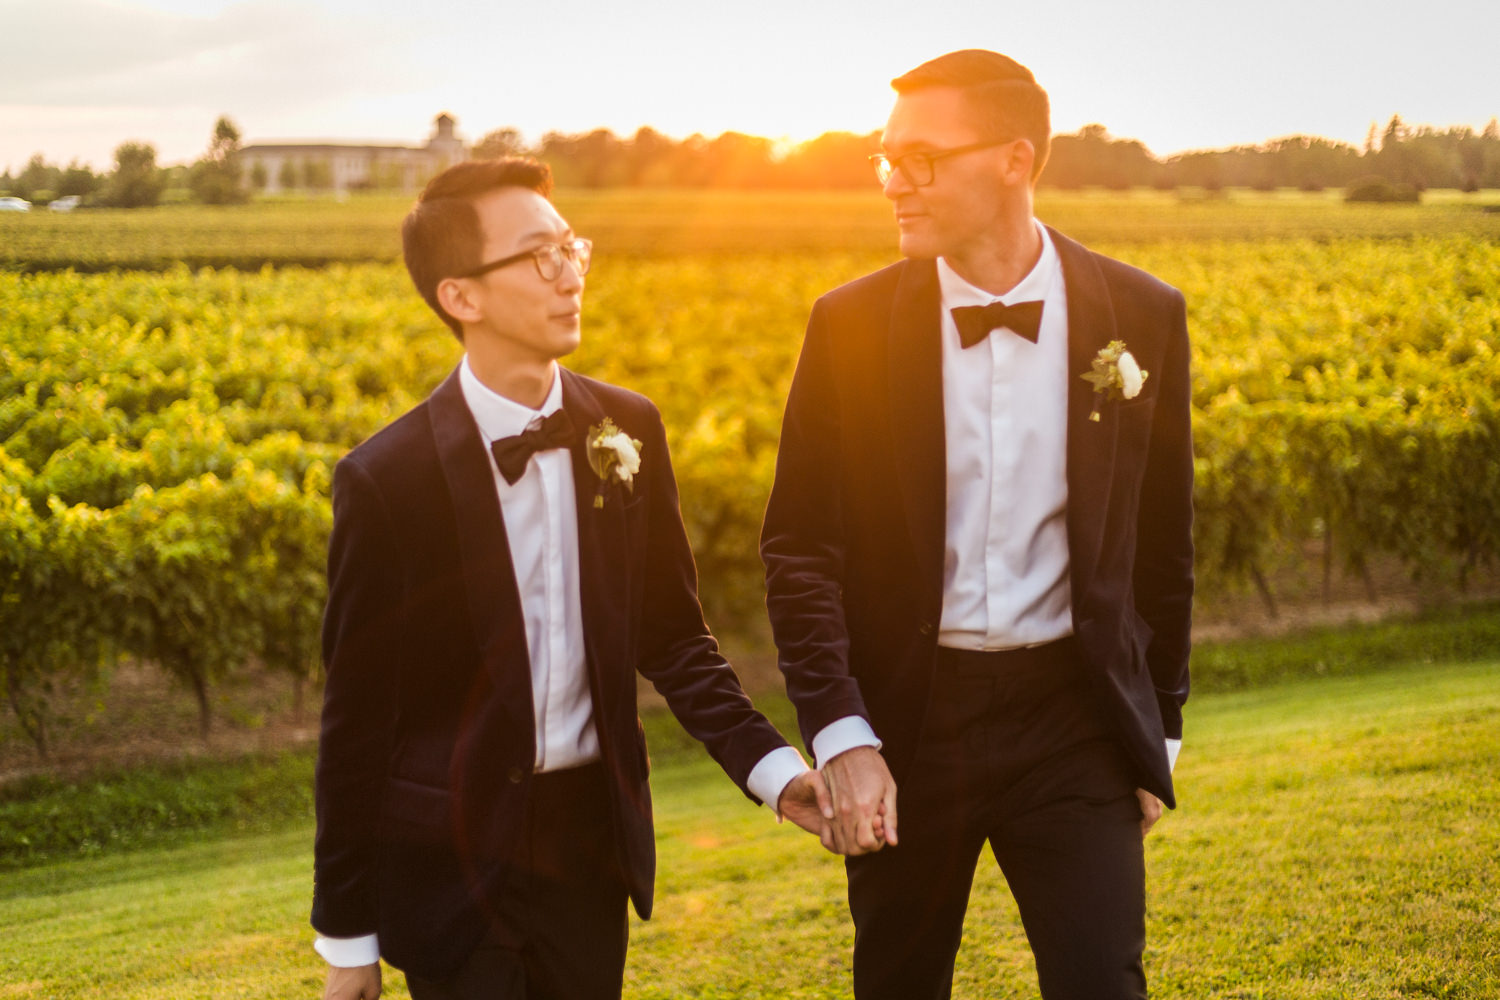 Niagara-on-the-lake Wedding Photographer – Dexter & Andrew